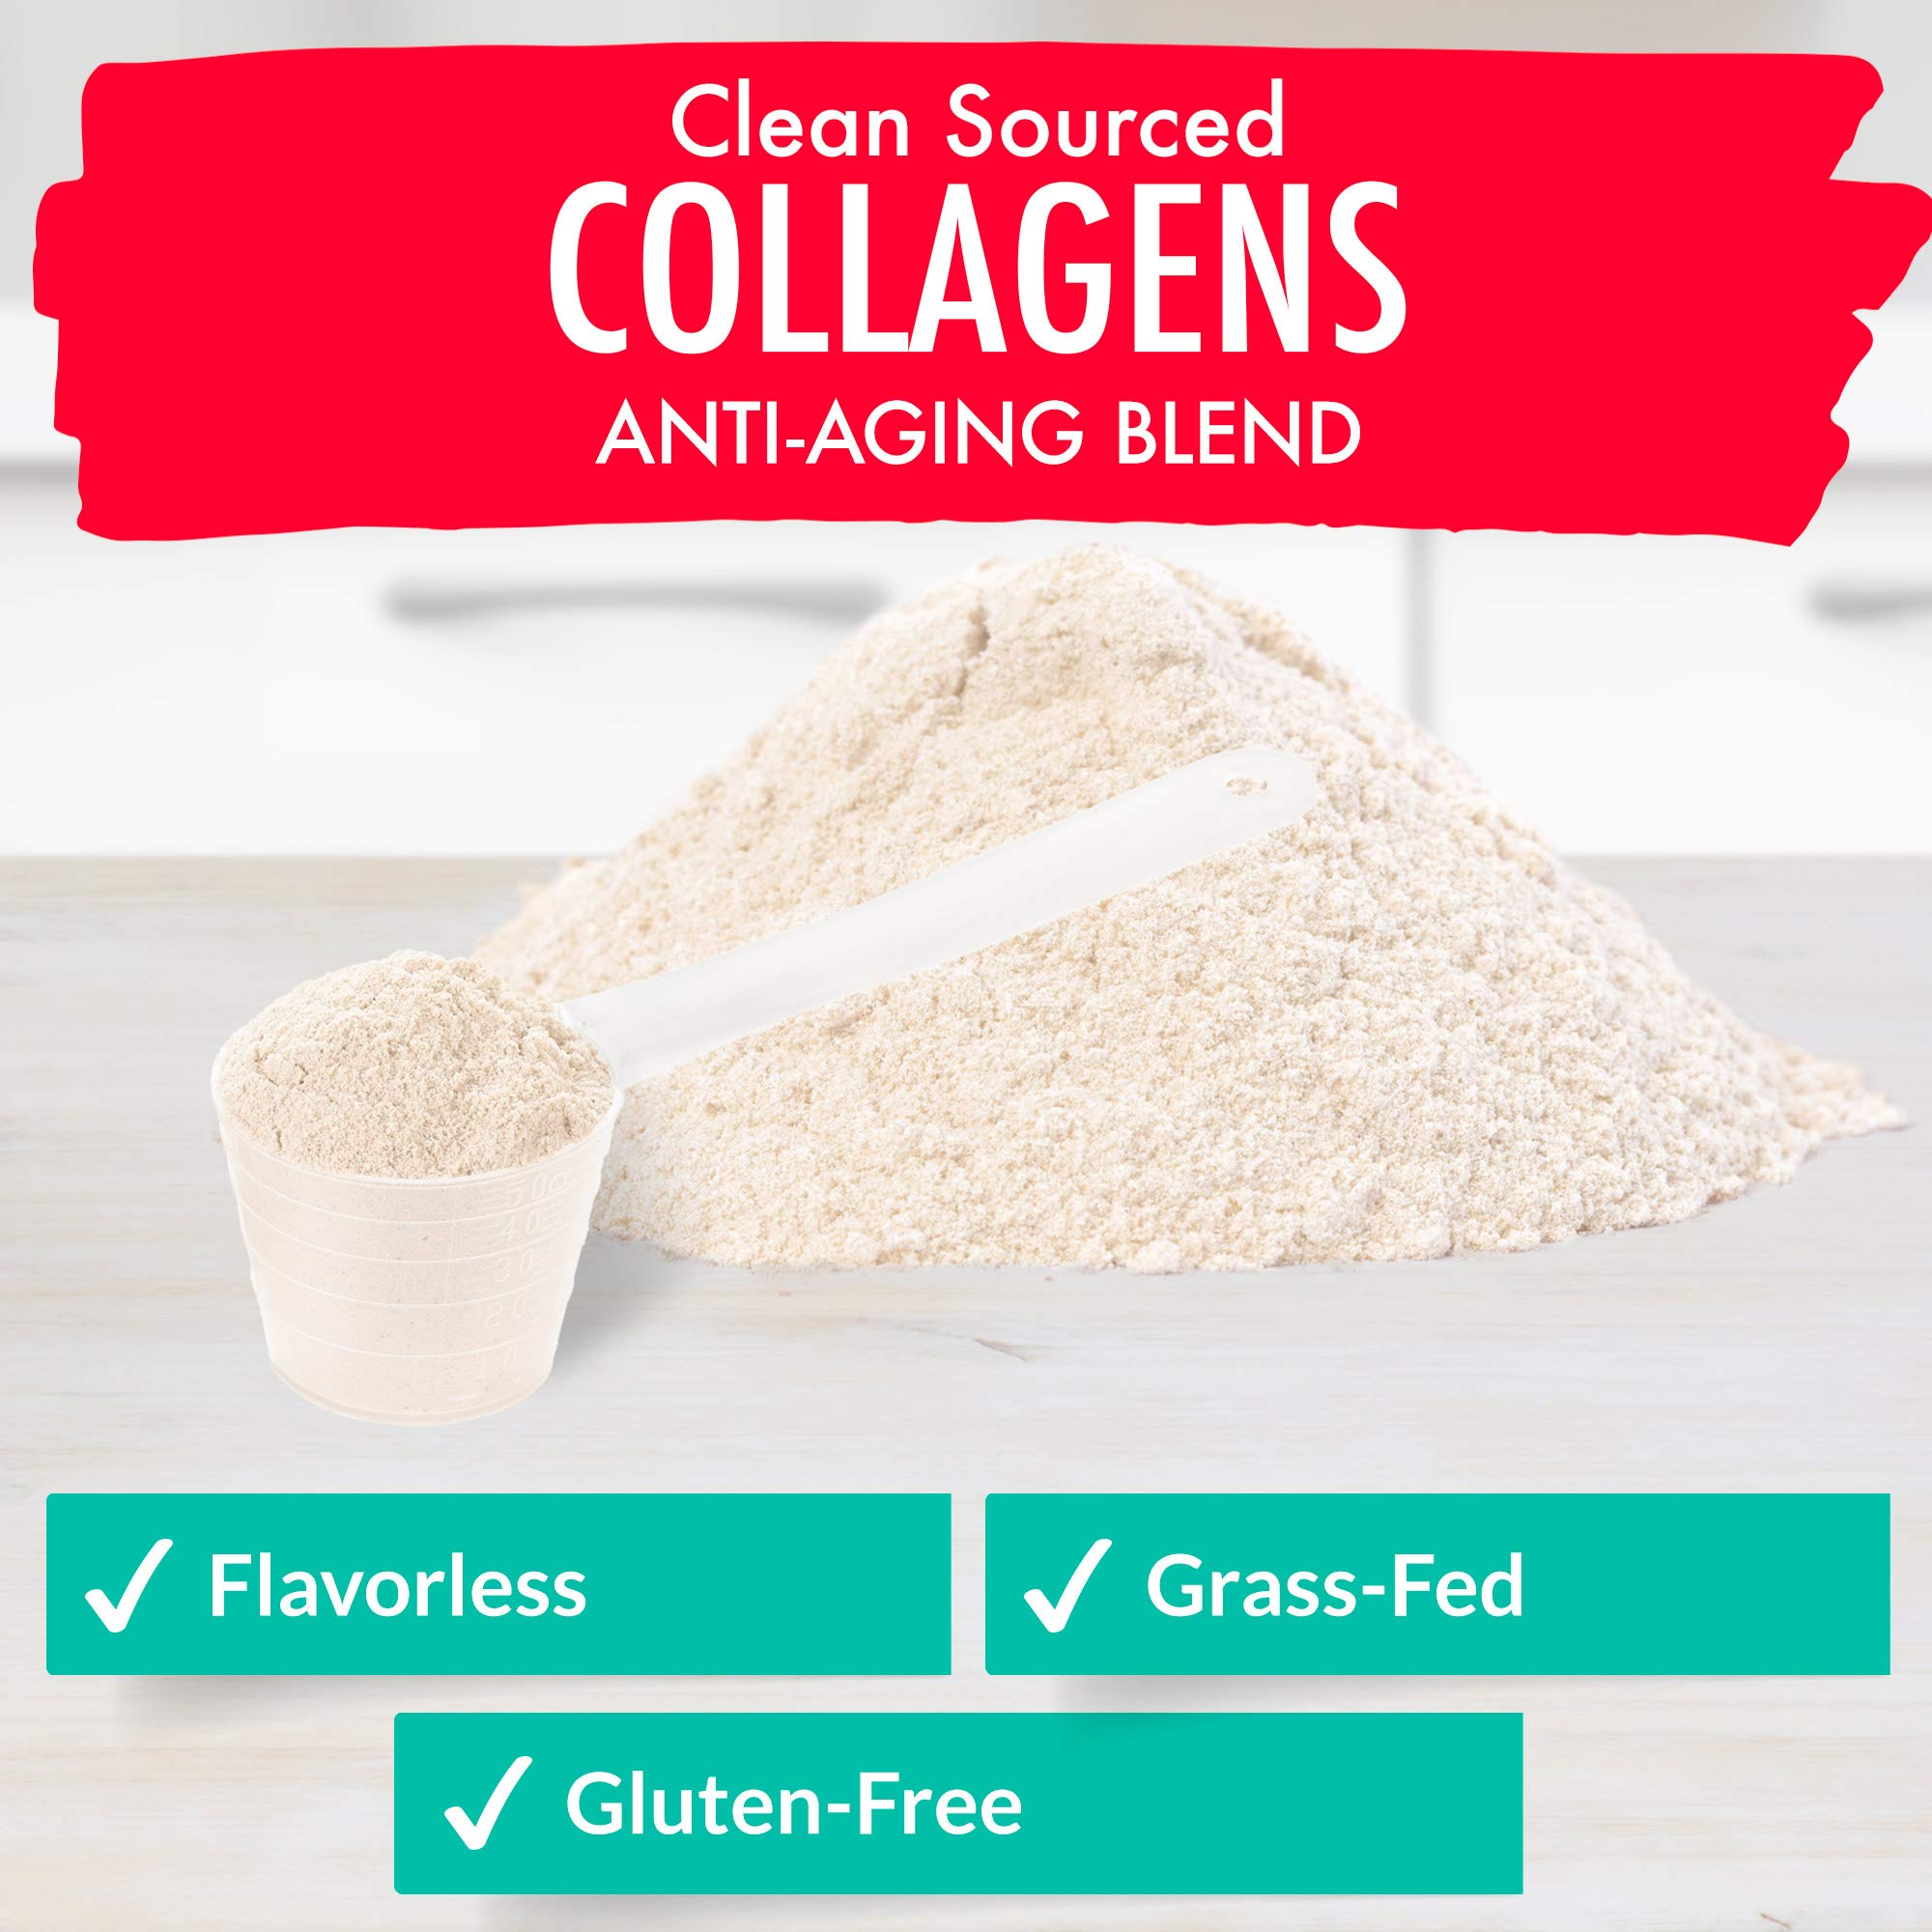 Collagen Powder - 5 types in 1 - Improves Hair, Skin and Nails - 4 Sources Including Marine Collagen and Bone Broth Collagen - Clean Sourced Collagens by Organixx (30 Servings) by ORGANIXX (Image #3)